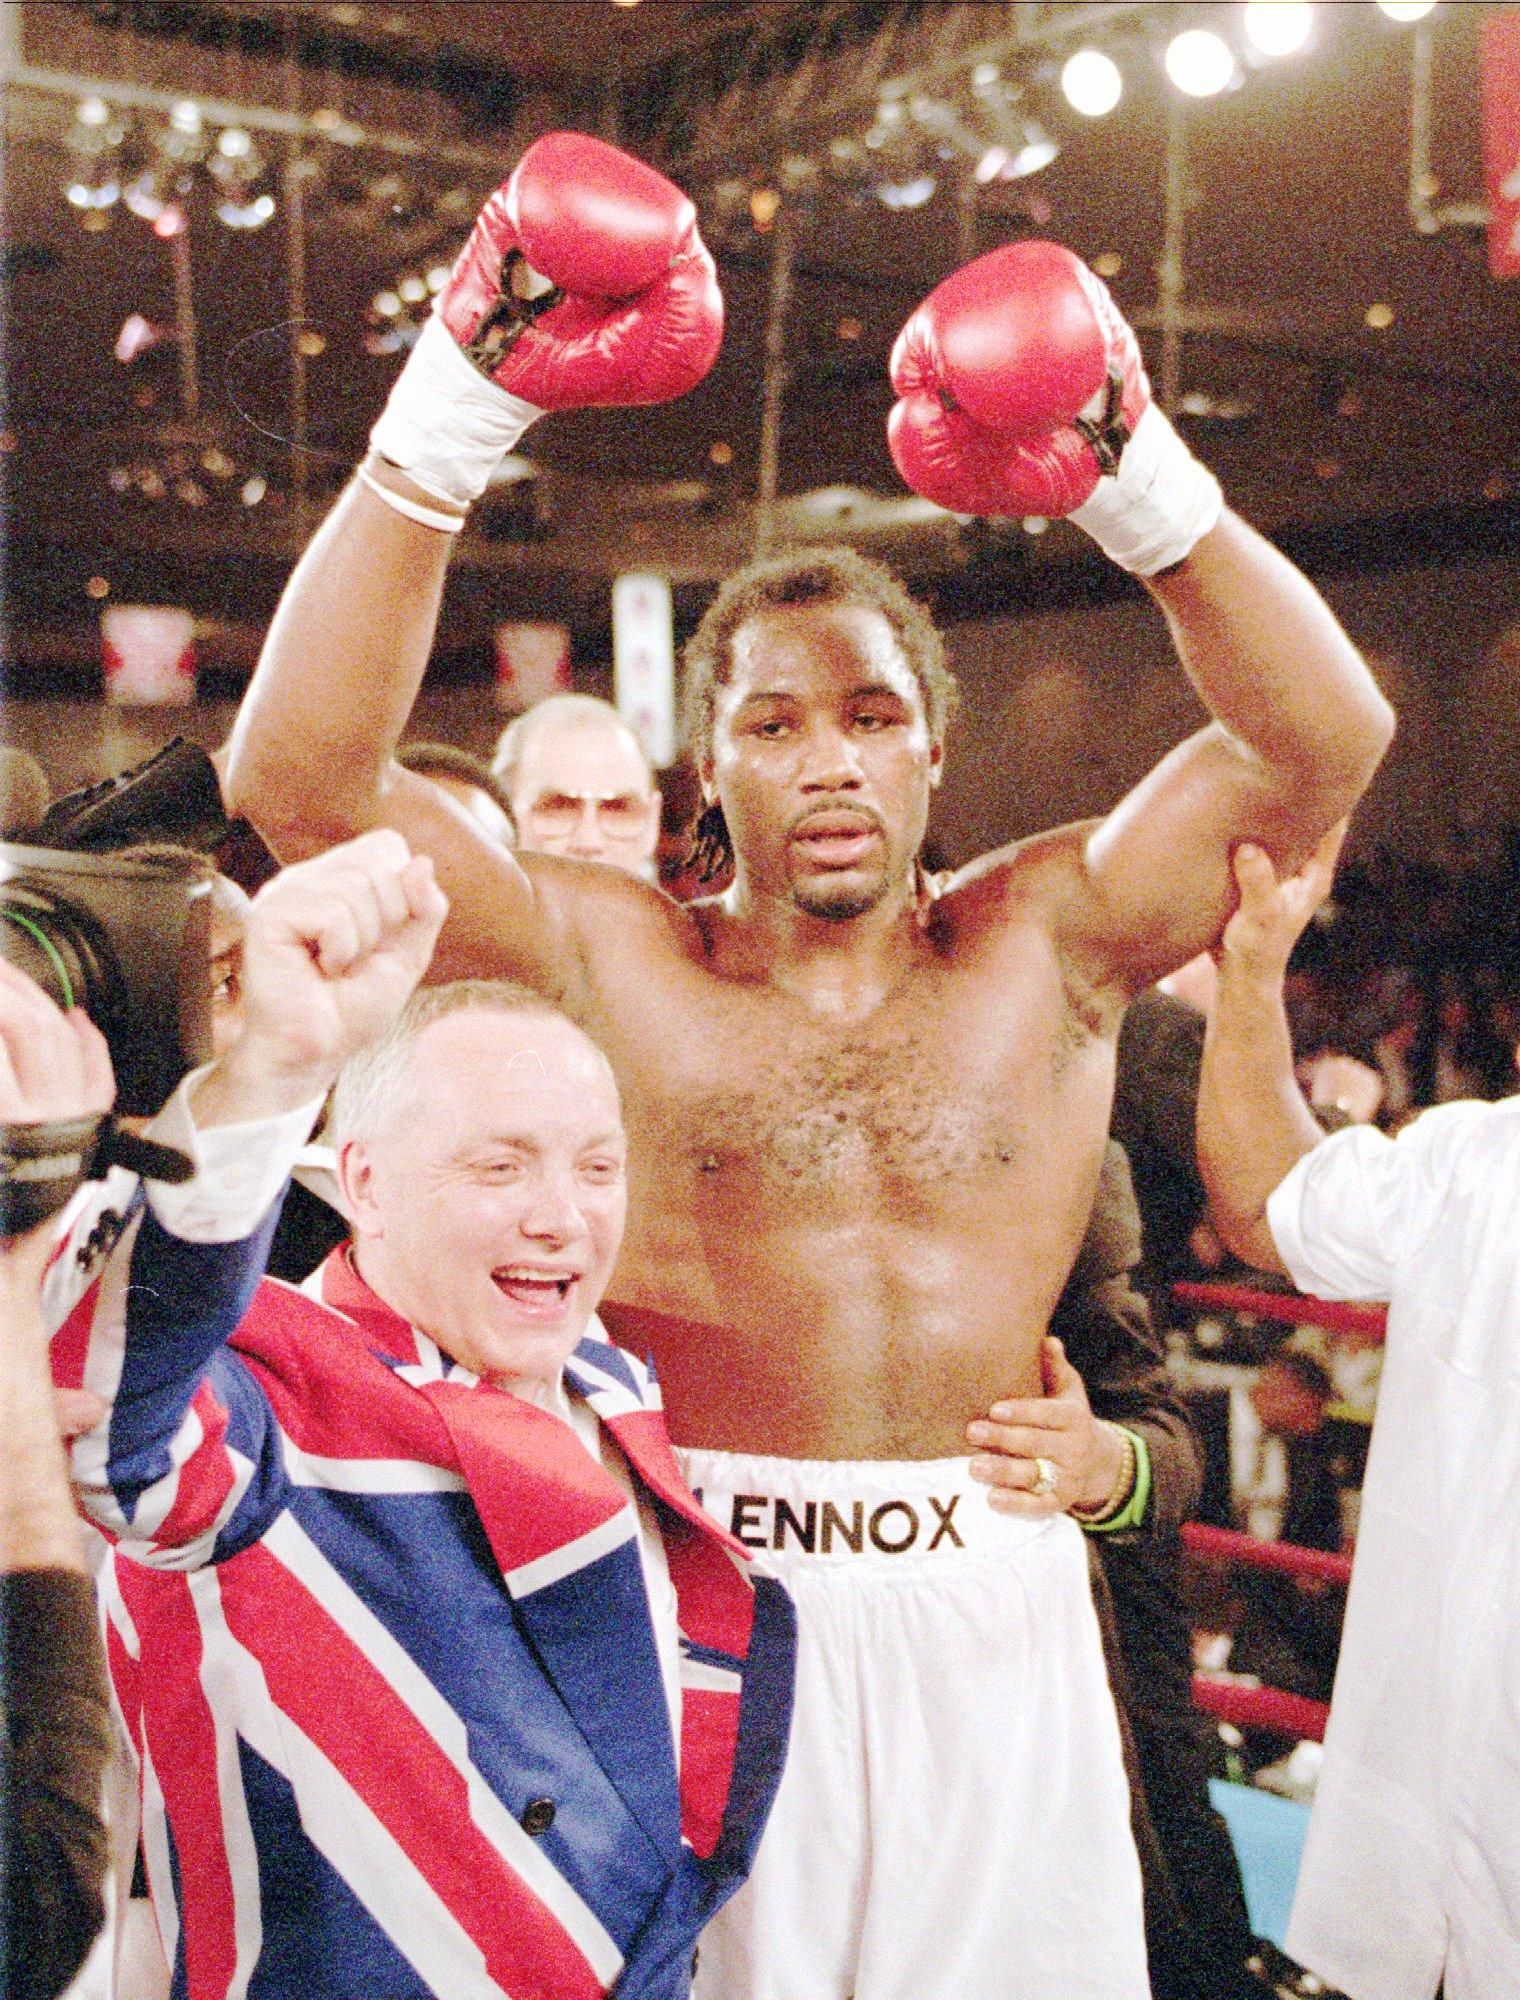 AJ has hopes of idolising British boxing legend Lennox Lewis by becoming the undisputed heavyweight champion